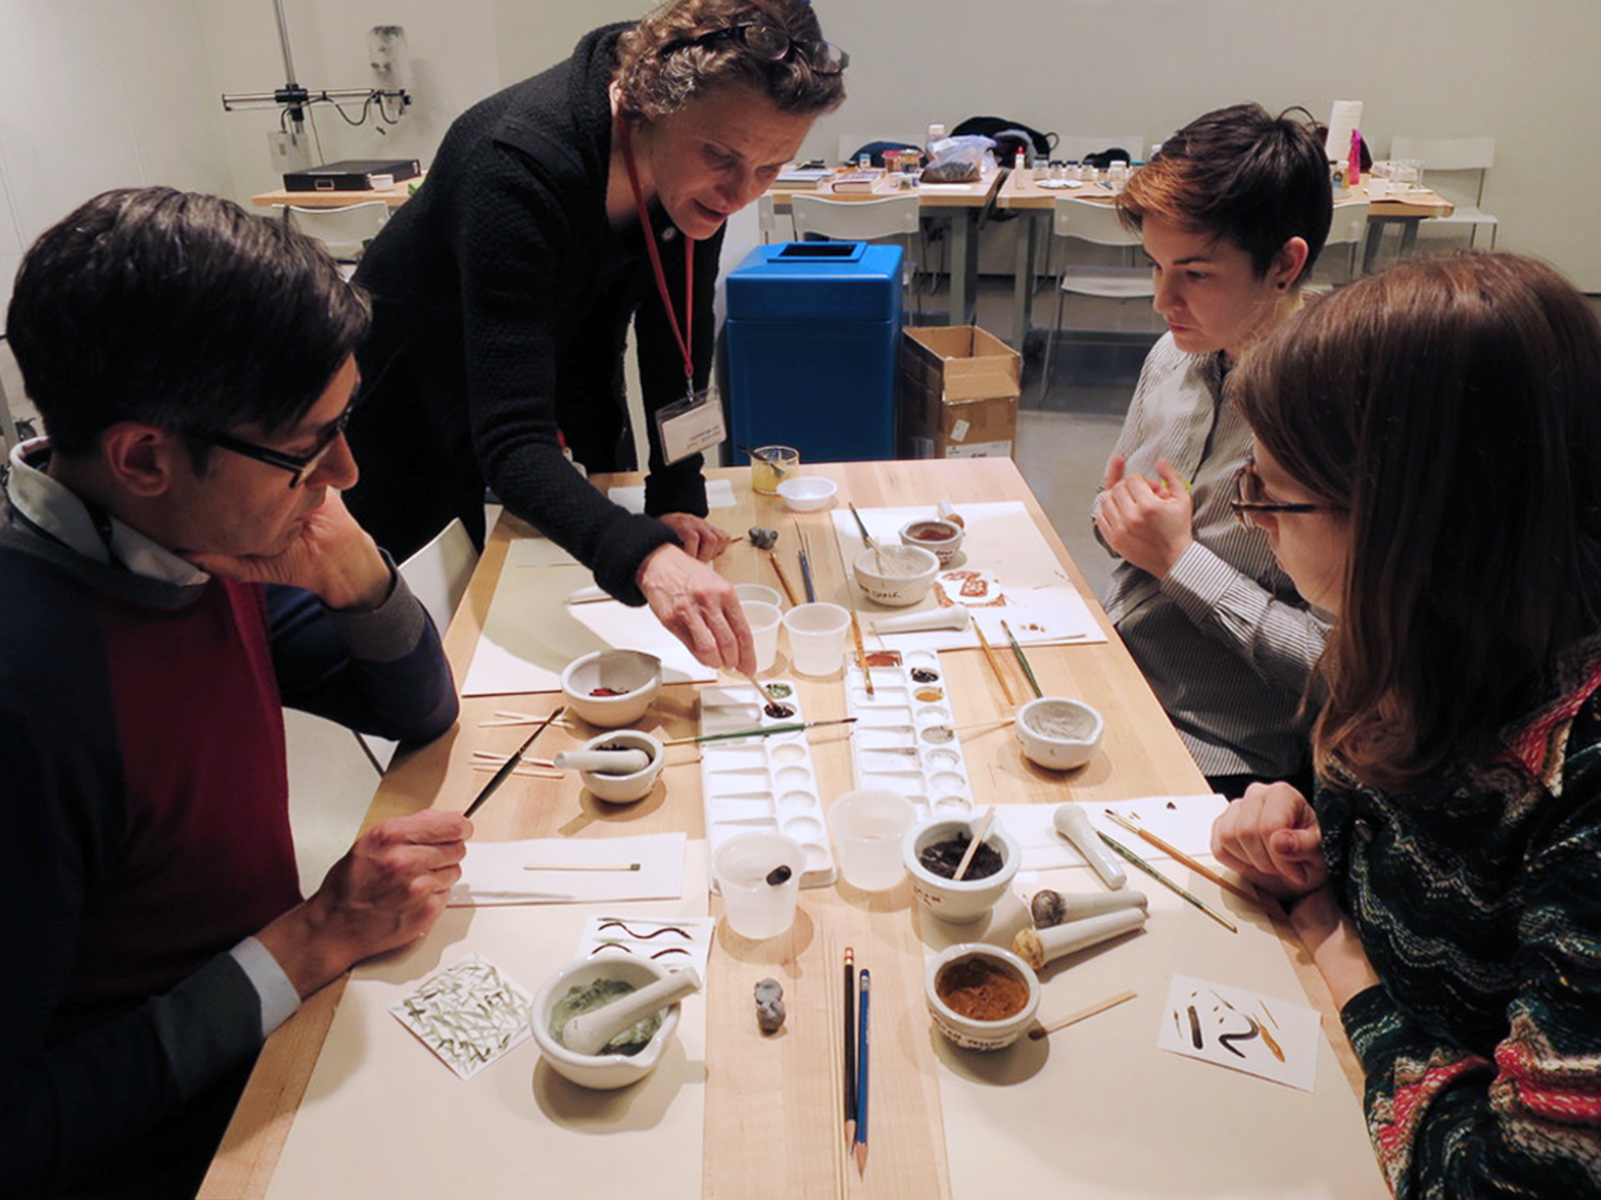 Francesca Bewer, top left, research curator for conservation and technical study programs and director of SITSA, leads an art making exercise in the Materials Lab, where many workshop sessions will take place.